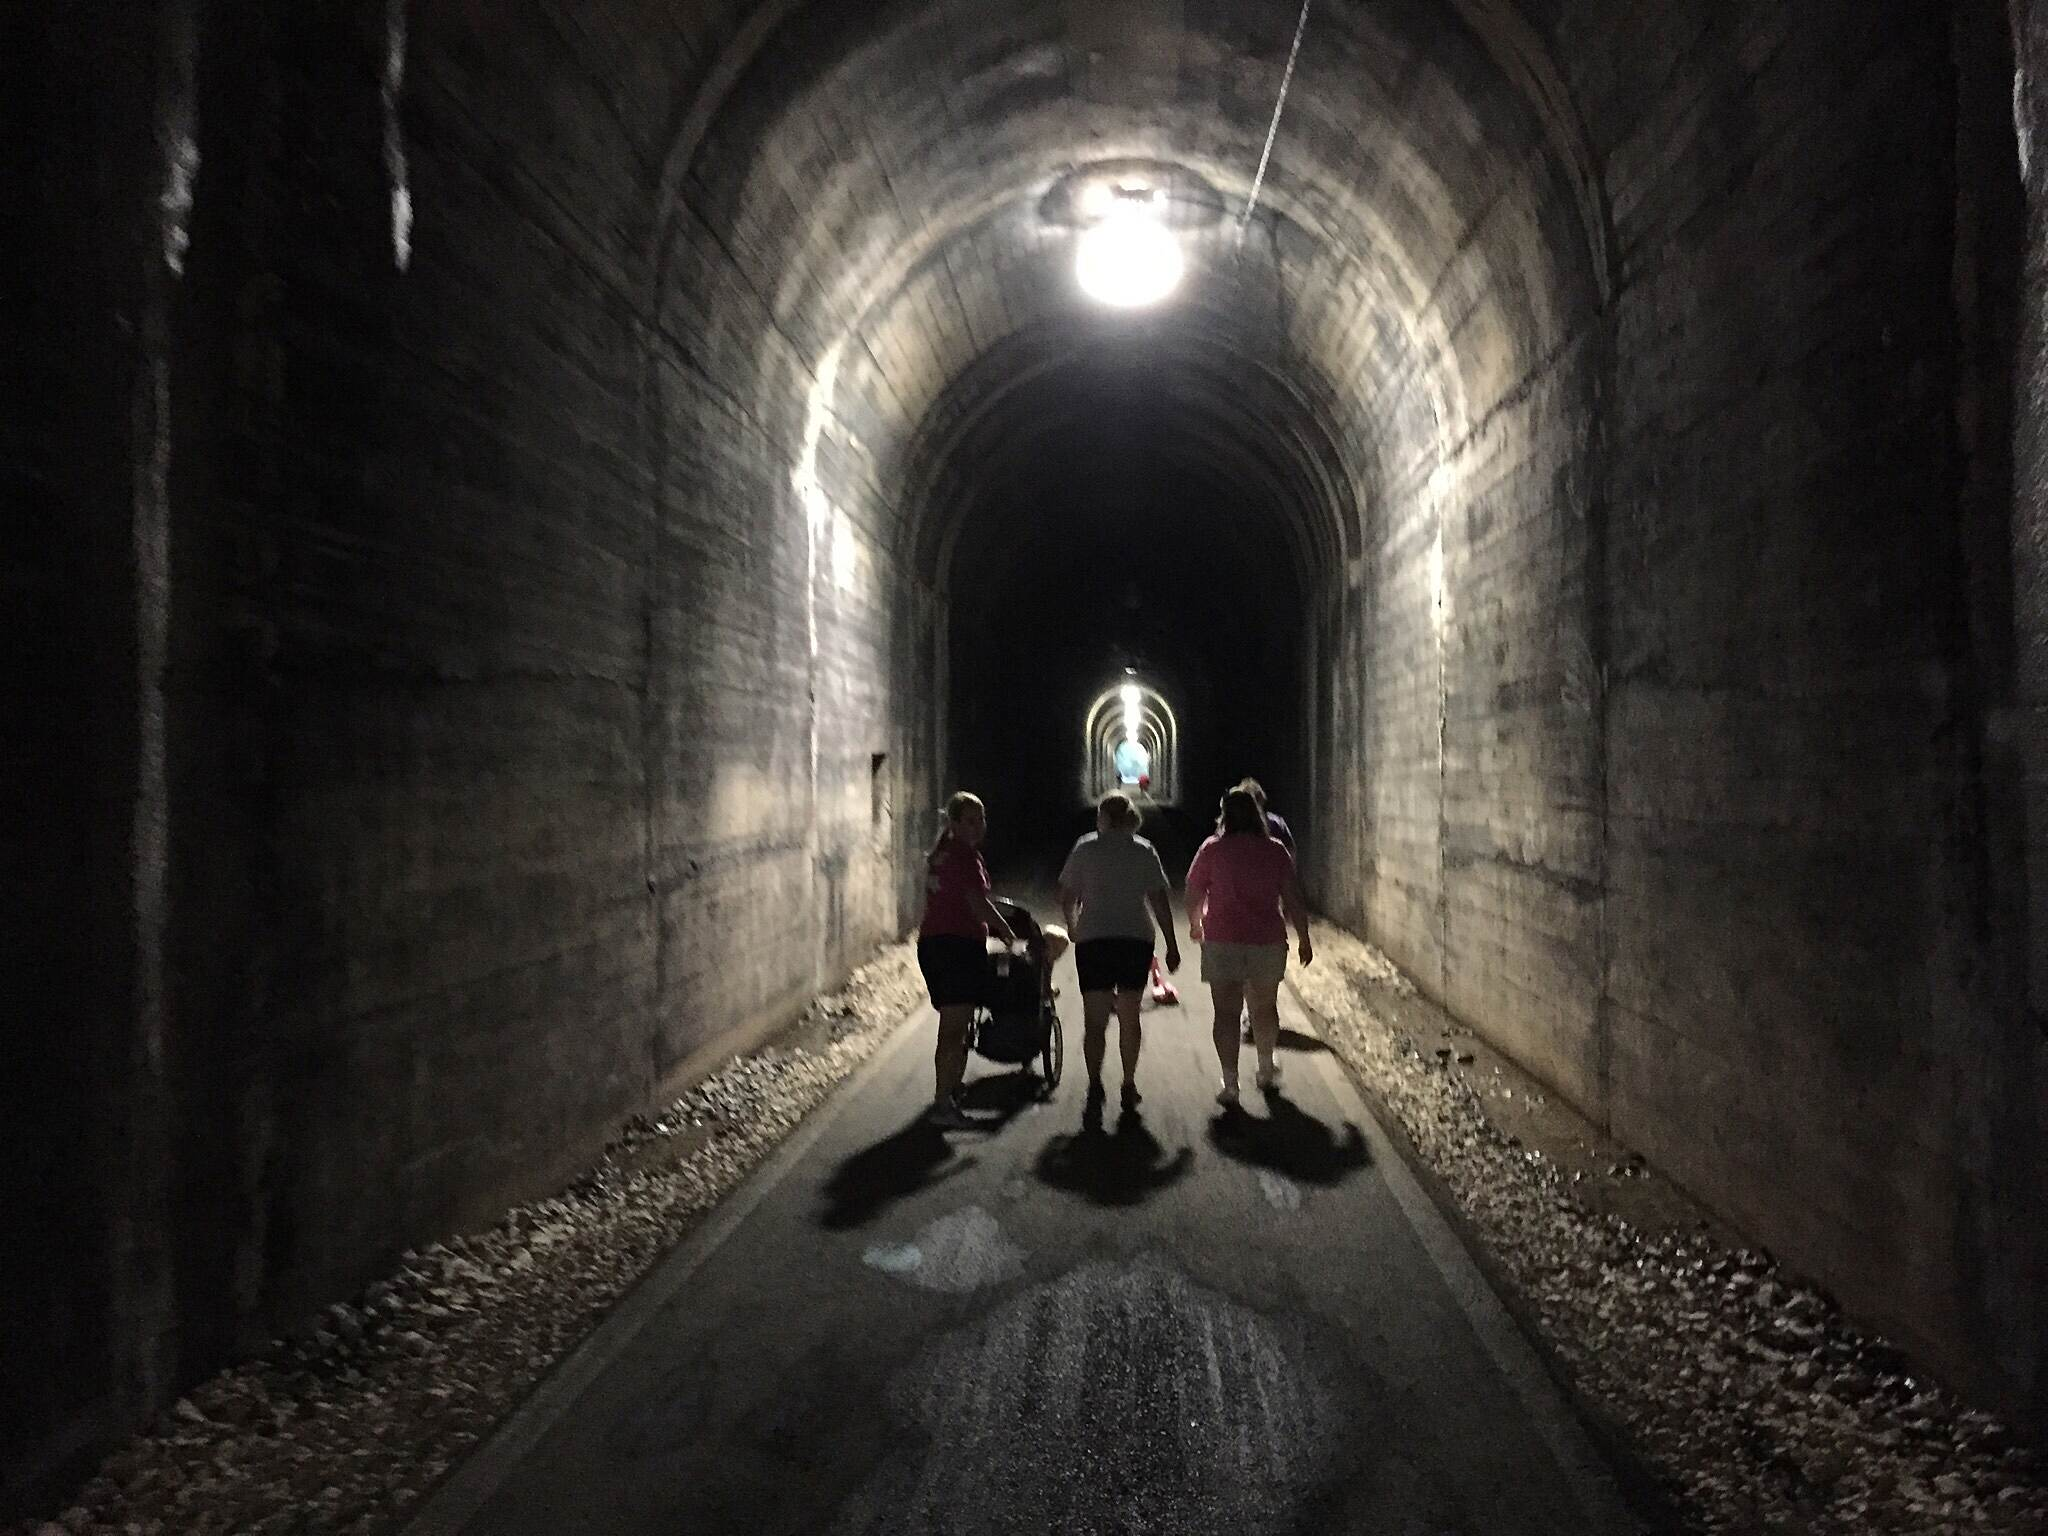 Marion County Trail (MCTrail) Walking through the tunnel.